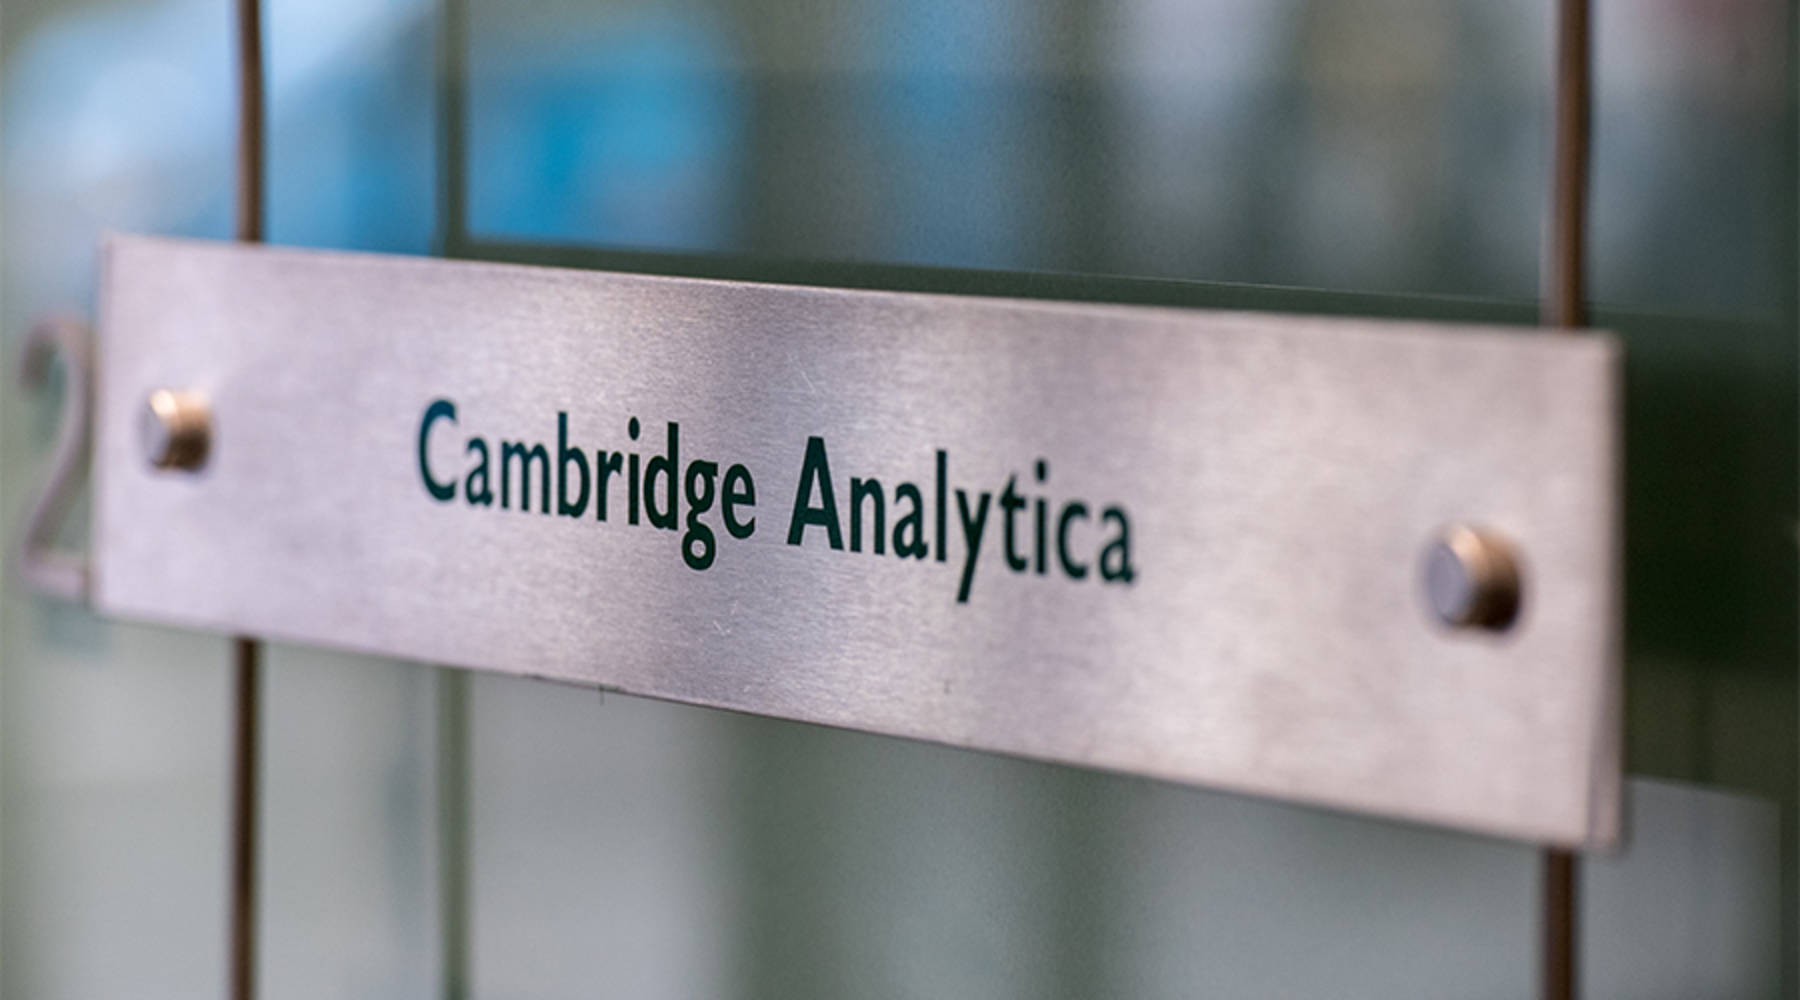 It's 2020. And the Cambridge Analytica story? It's growing …